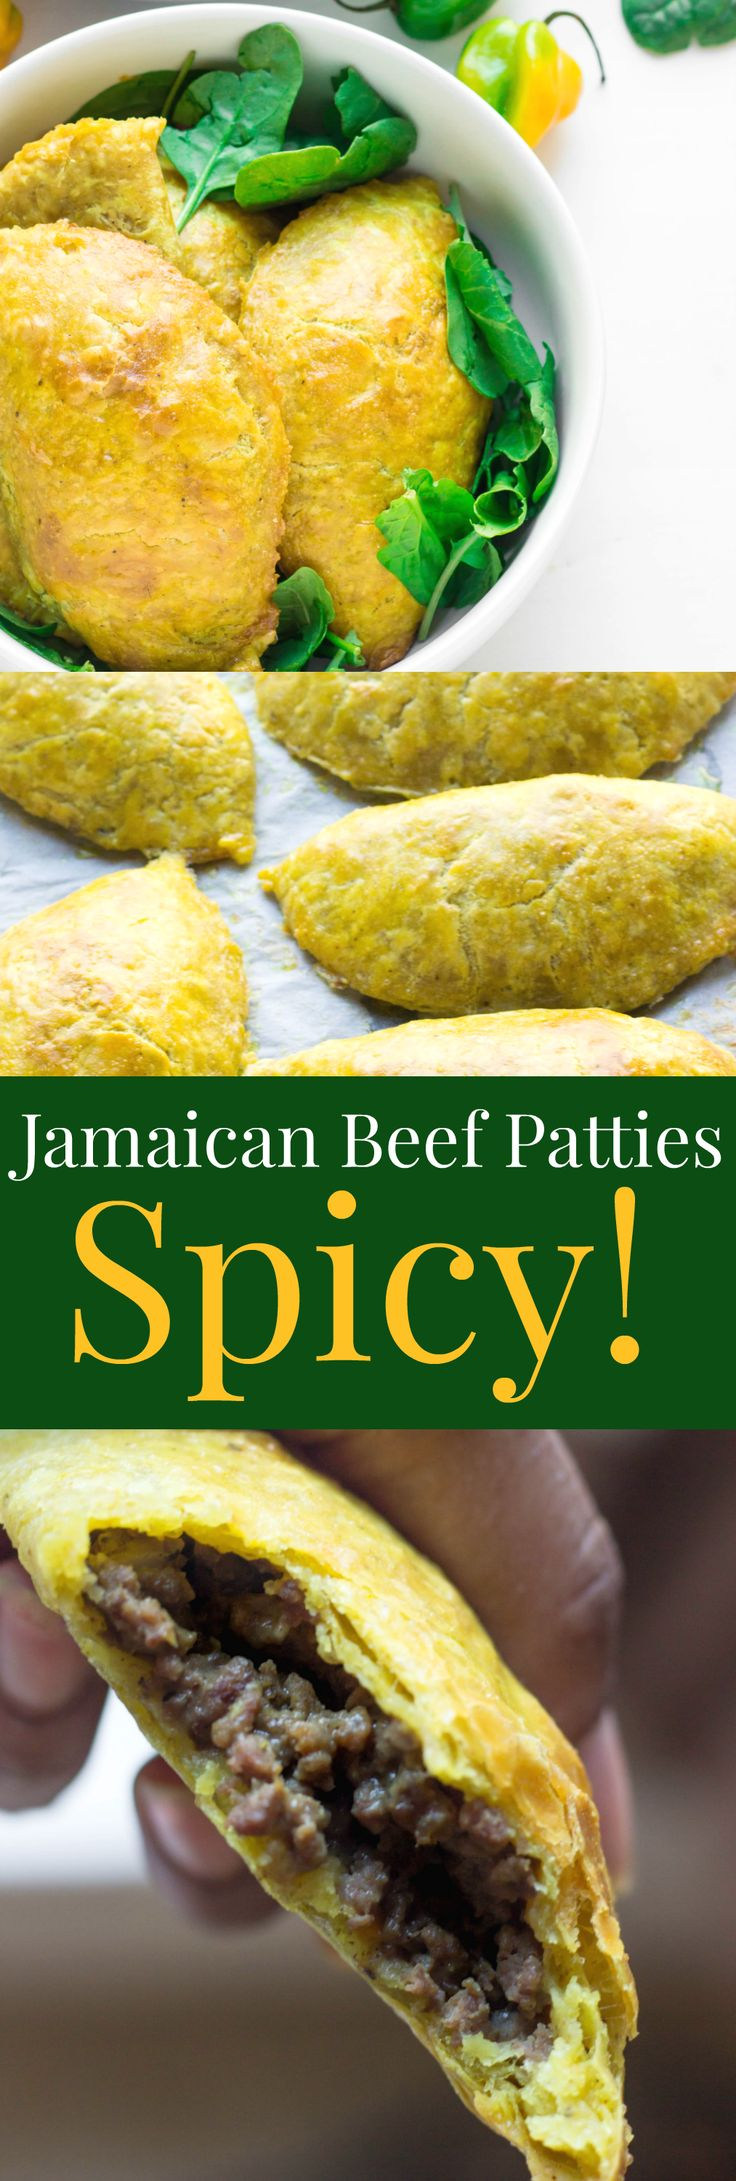 Spicy Jamaican Beef Patties with perfect butter flaky crust!